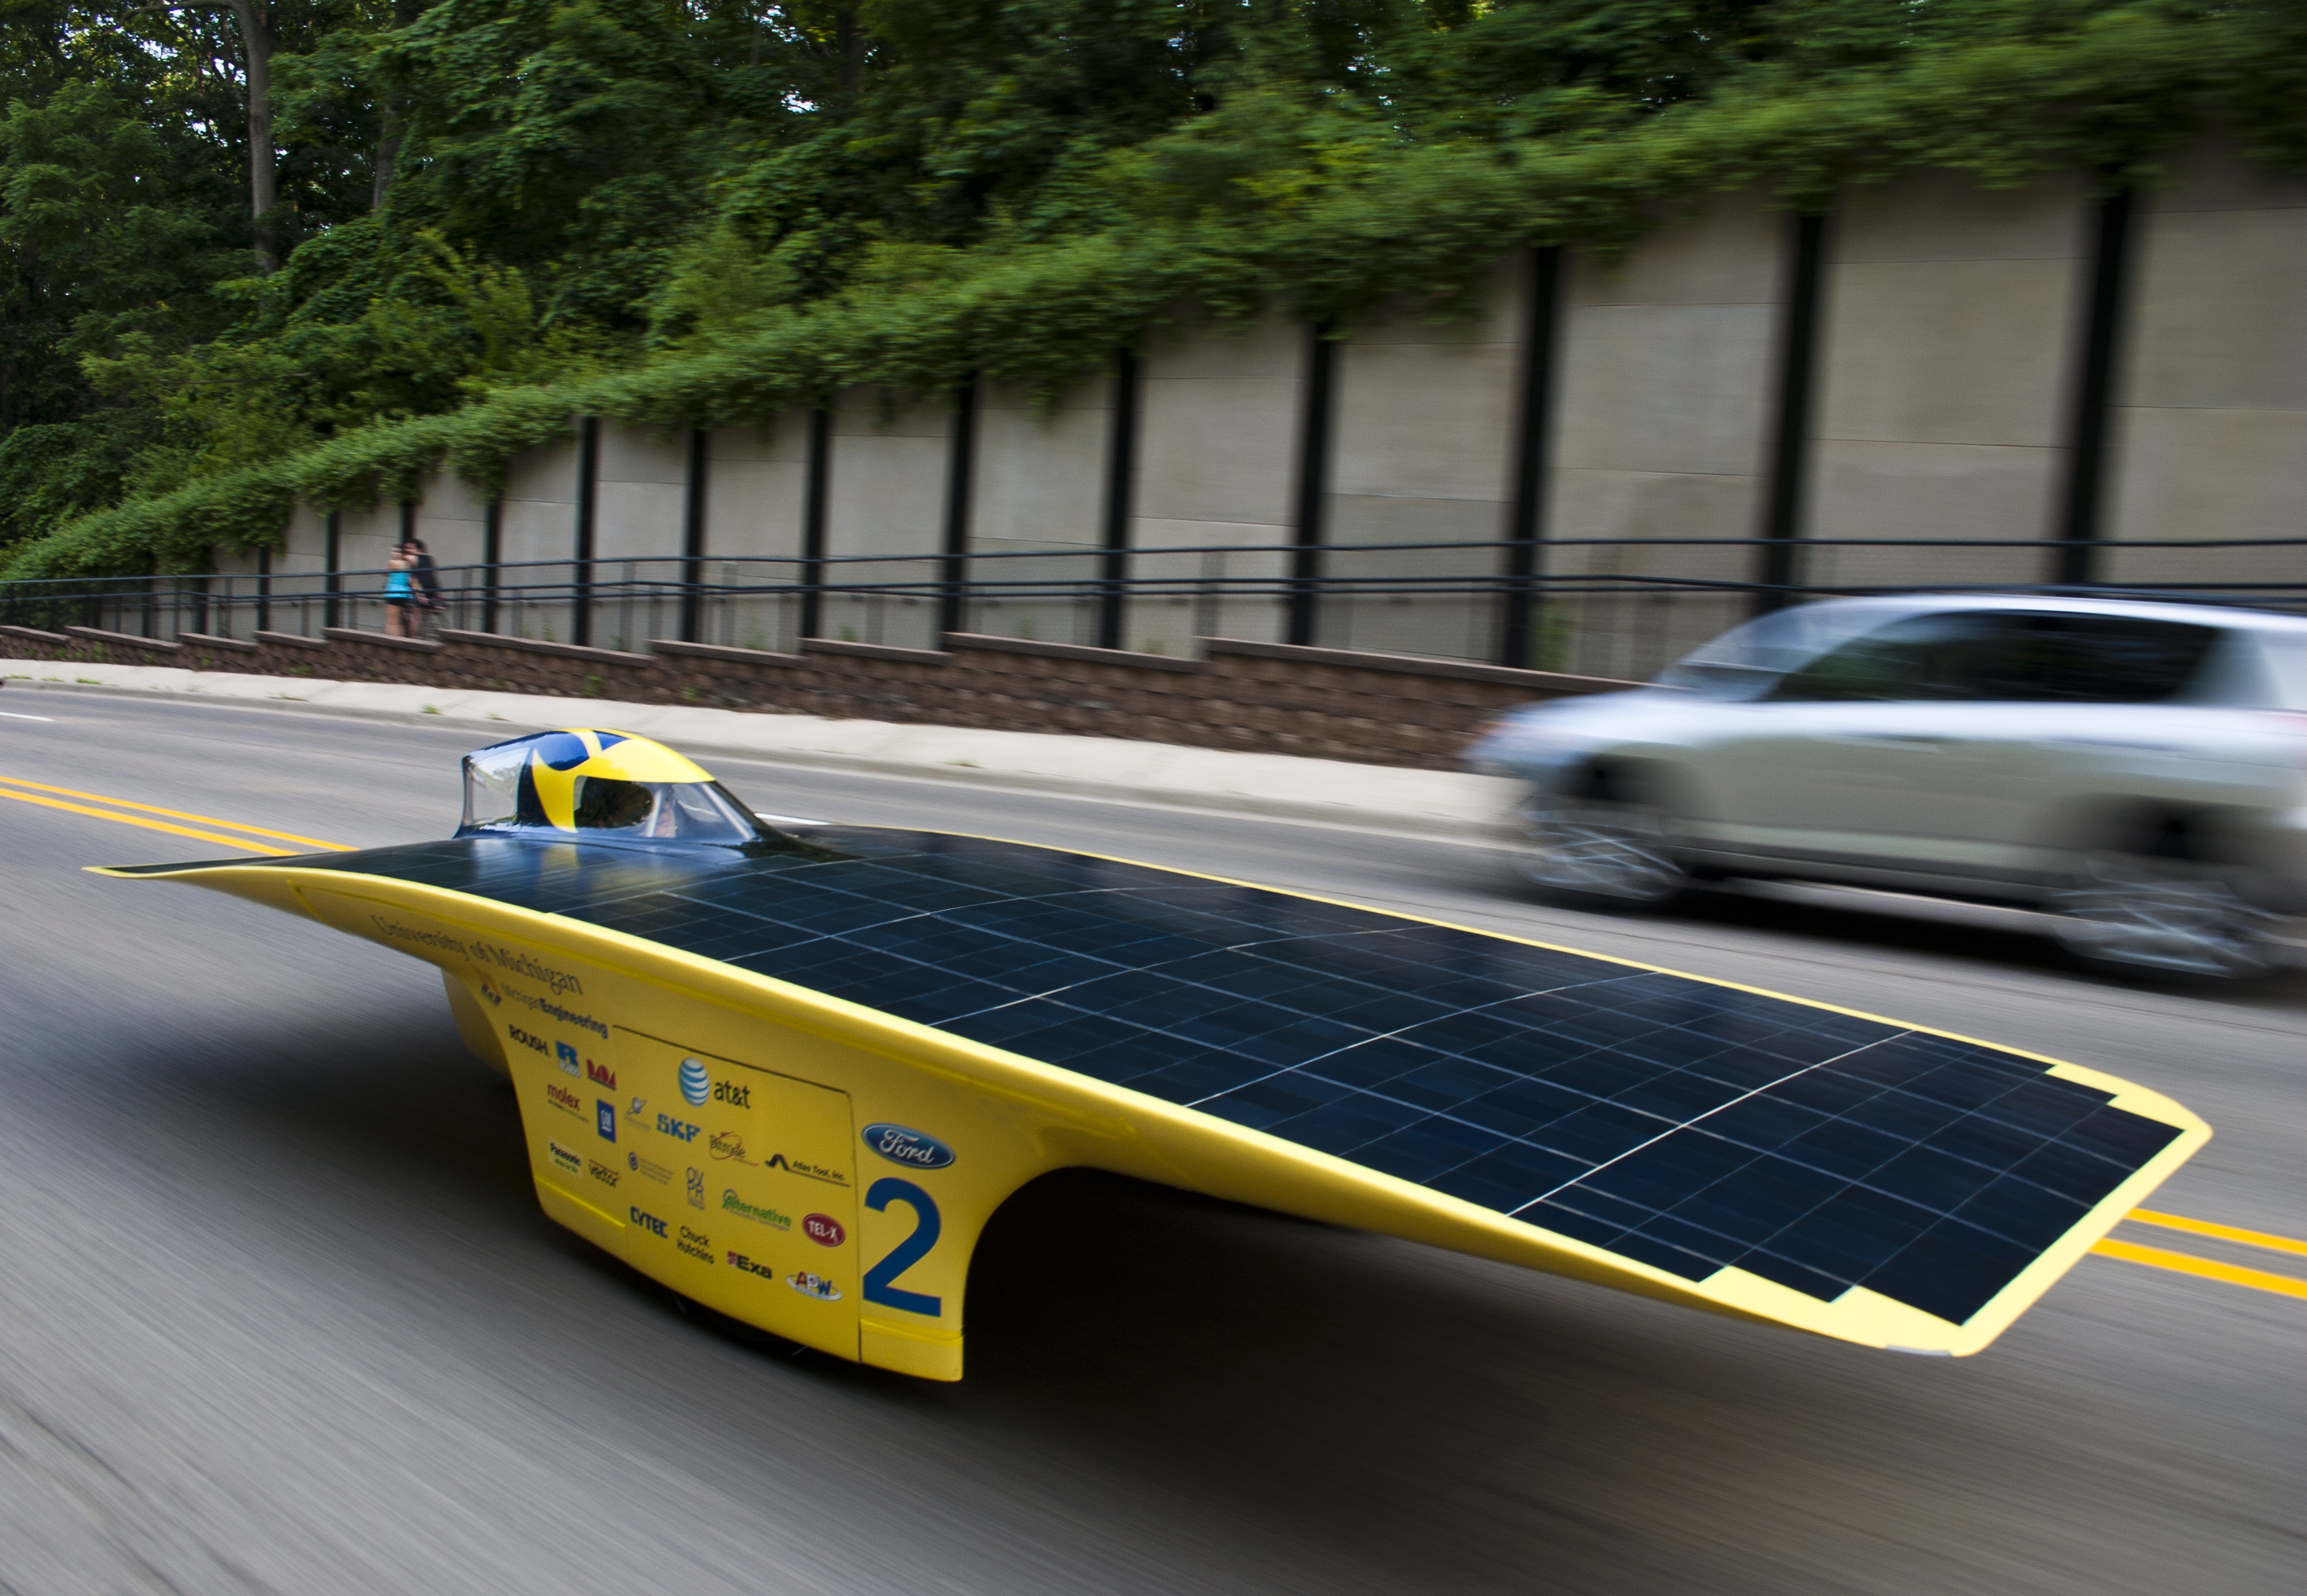 Nuts And Bolts Of Solar Power Giving Your Car Sun Stroke as well Solar Powered Cars as well Jada Pinkett Smith Beautiful Wallpapers as well Apple Electric Car Concept additionally Fuel Cells. on solar powered race cars